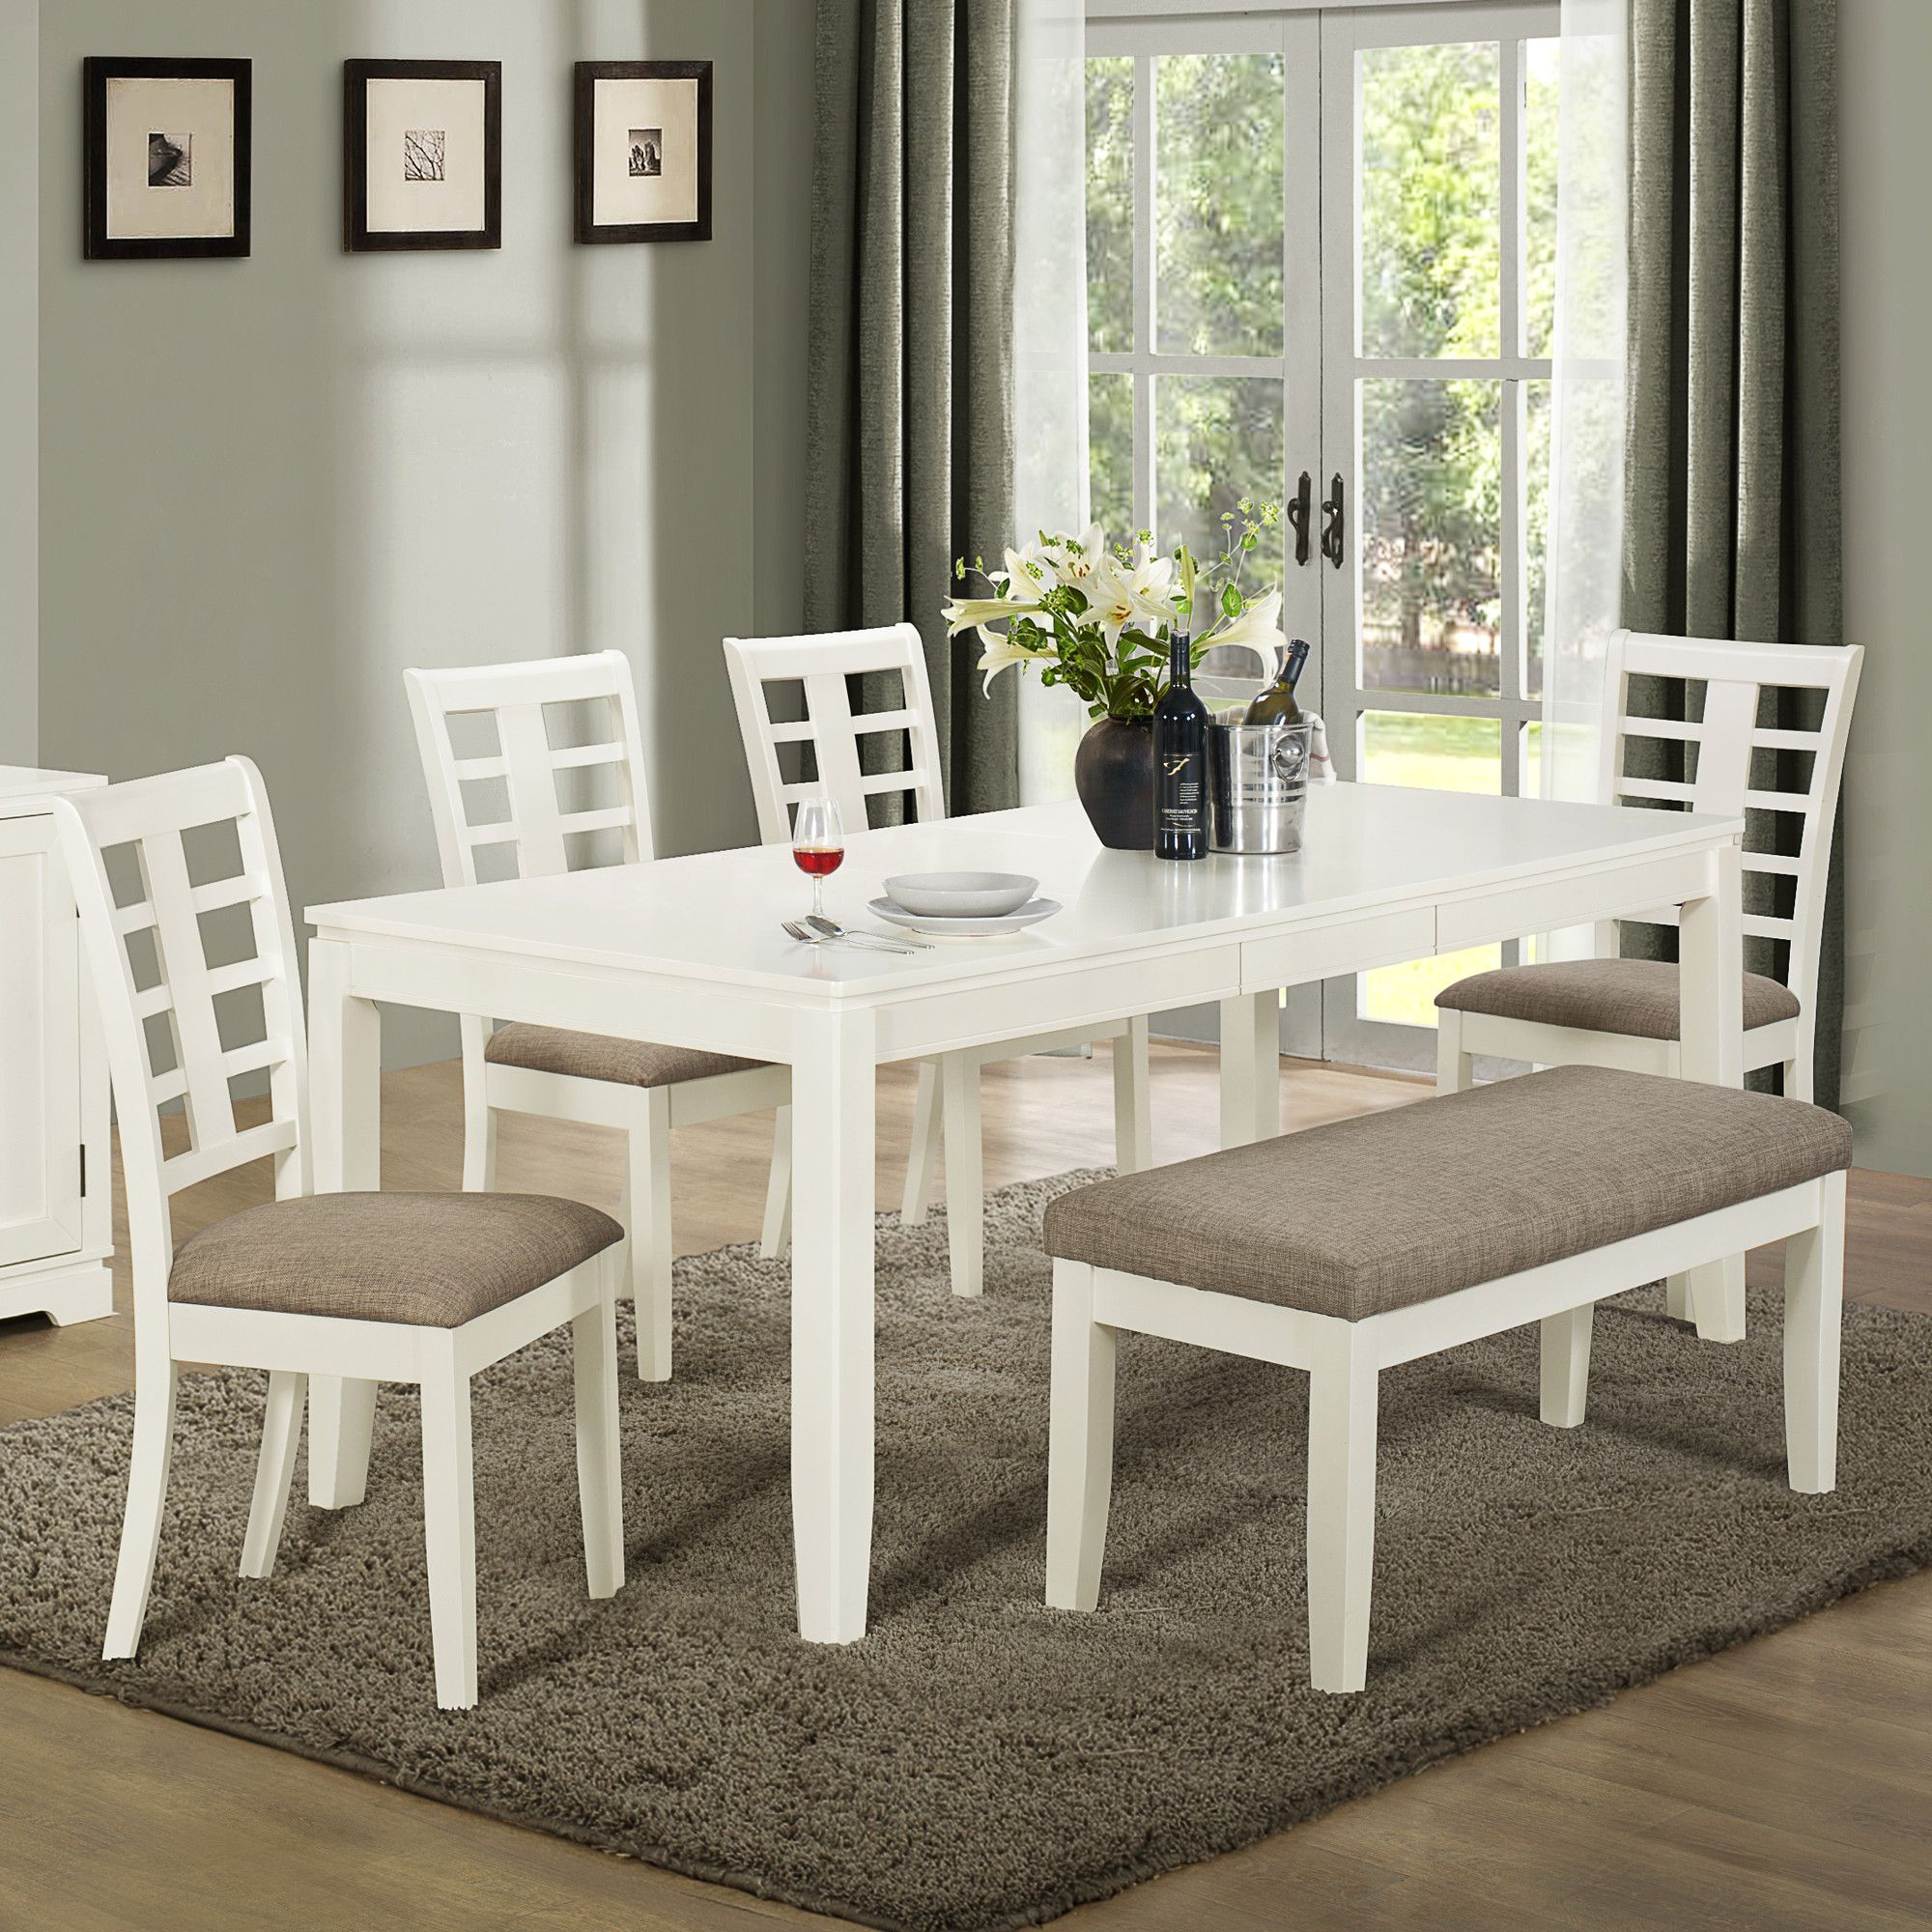 28 Big Small Dining Room Sets With Bench Seating Small Dining Room Set White Dining Room Table Dining Room Table Set